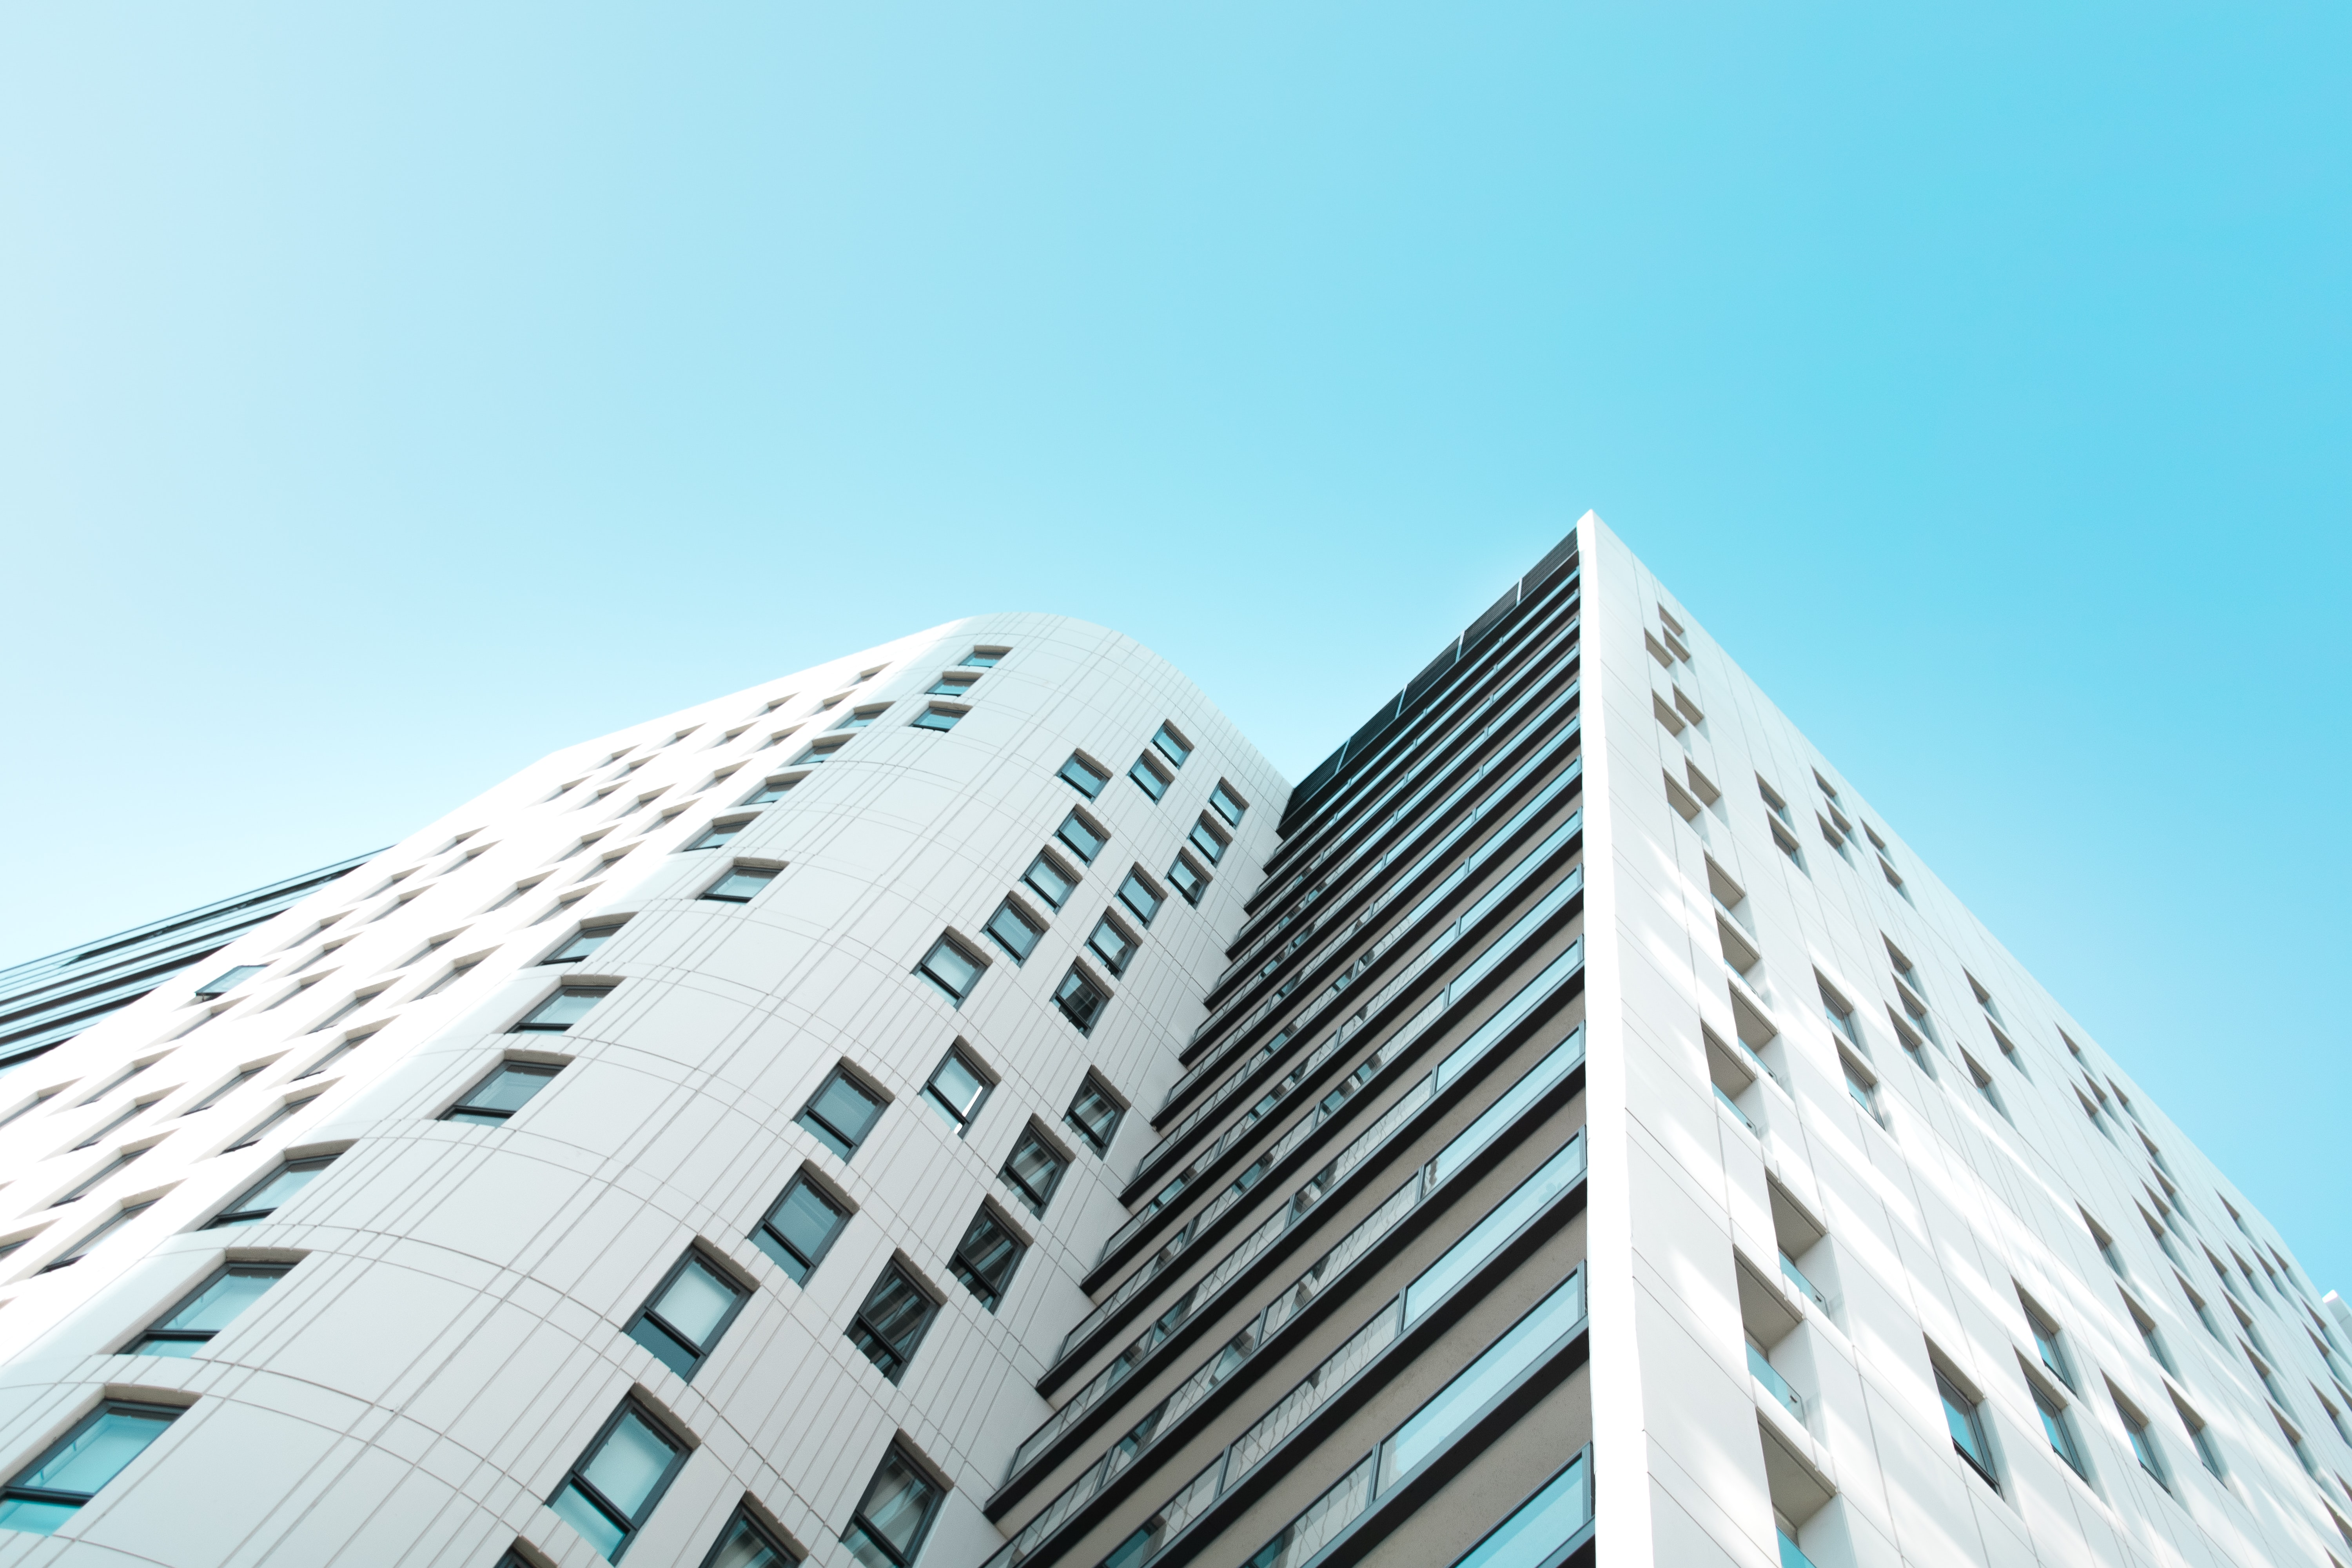 low angle photography of white concrete building